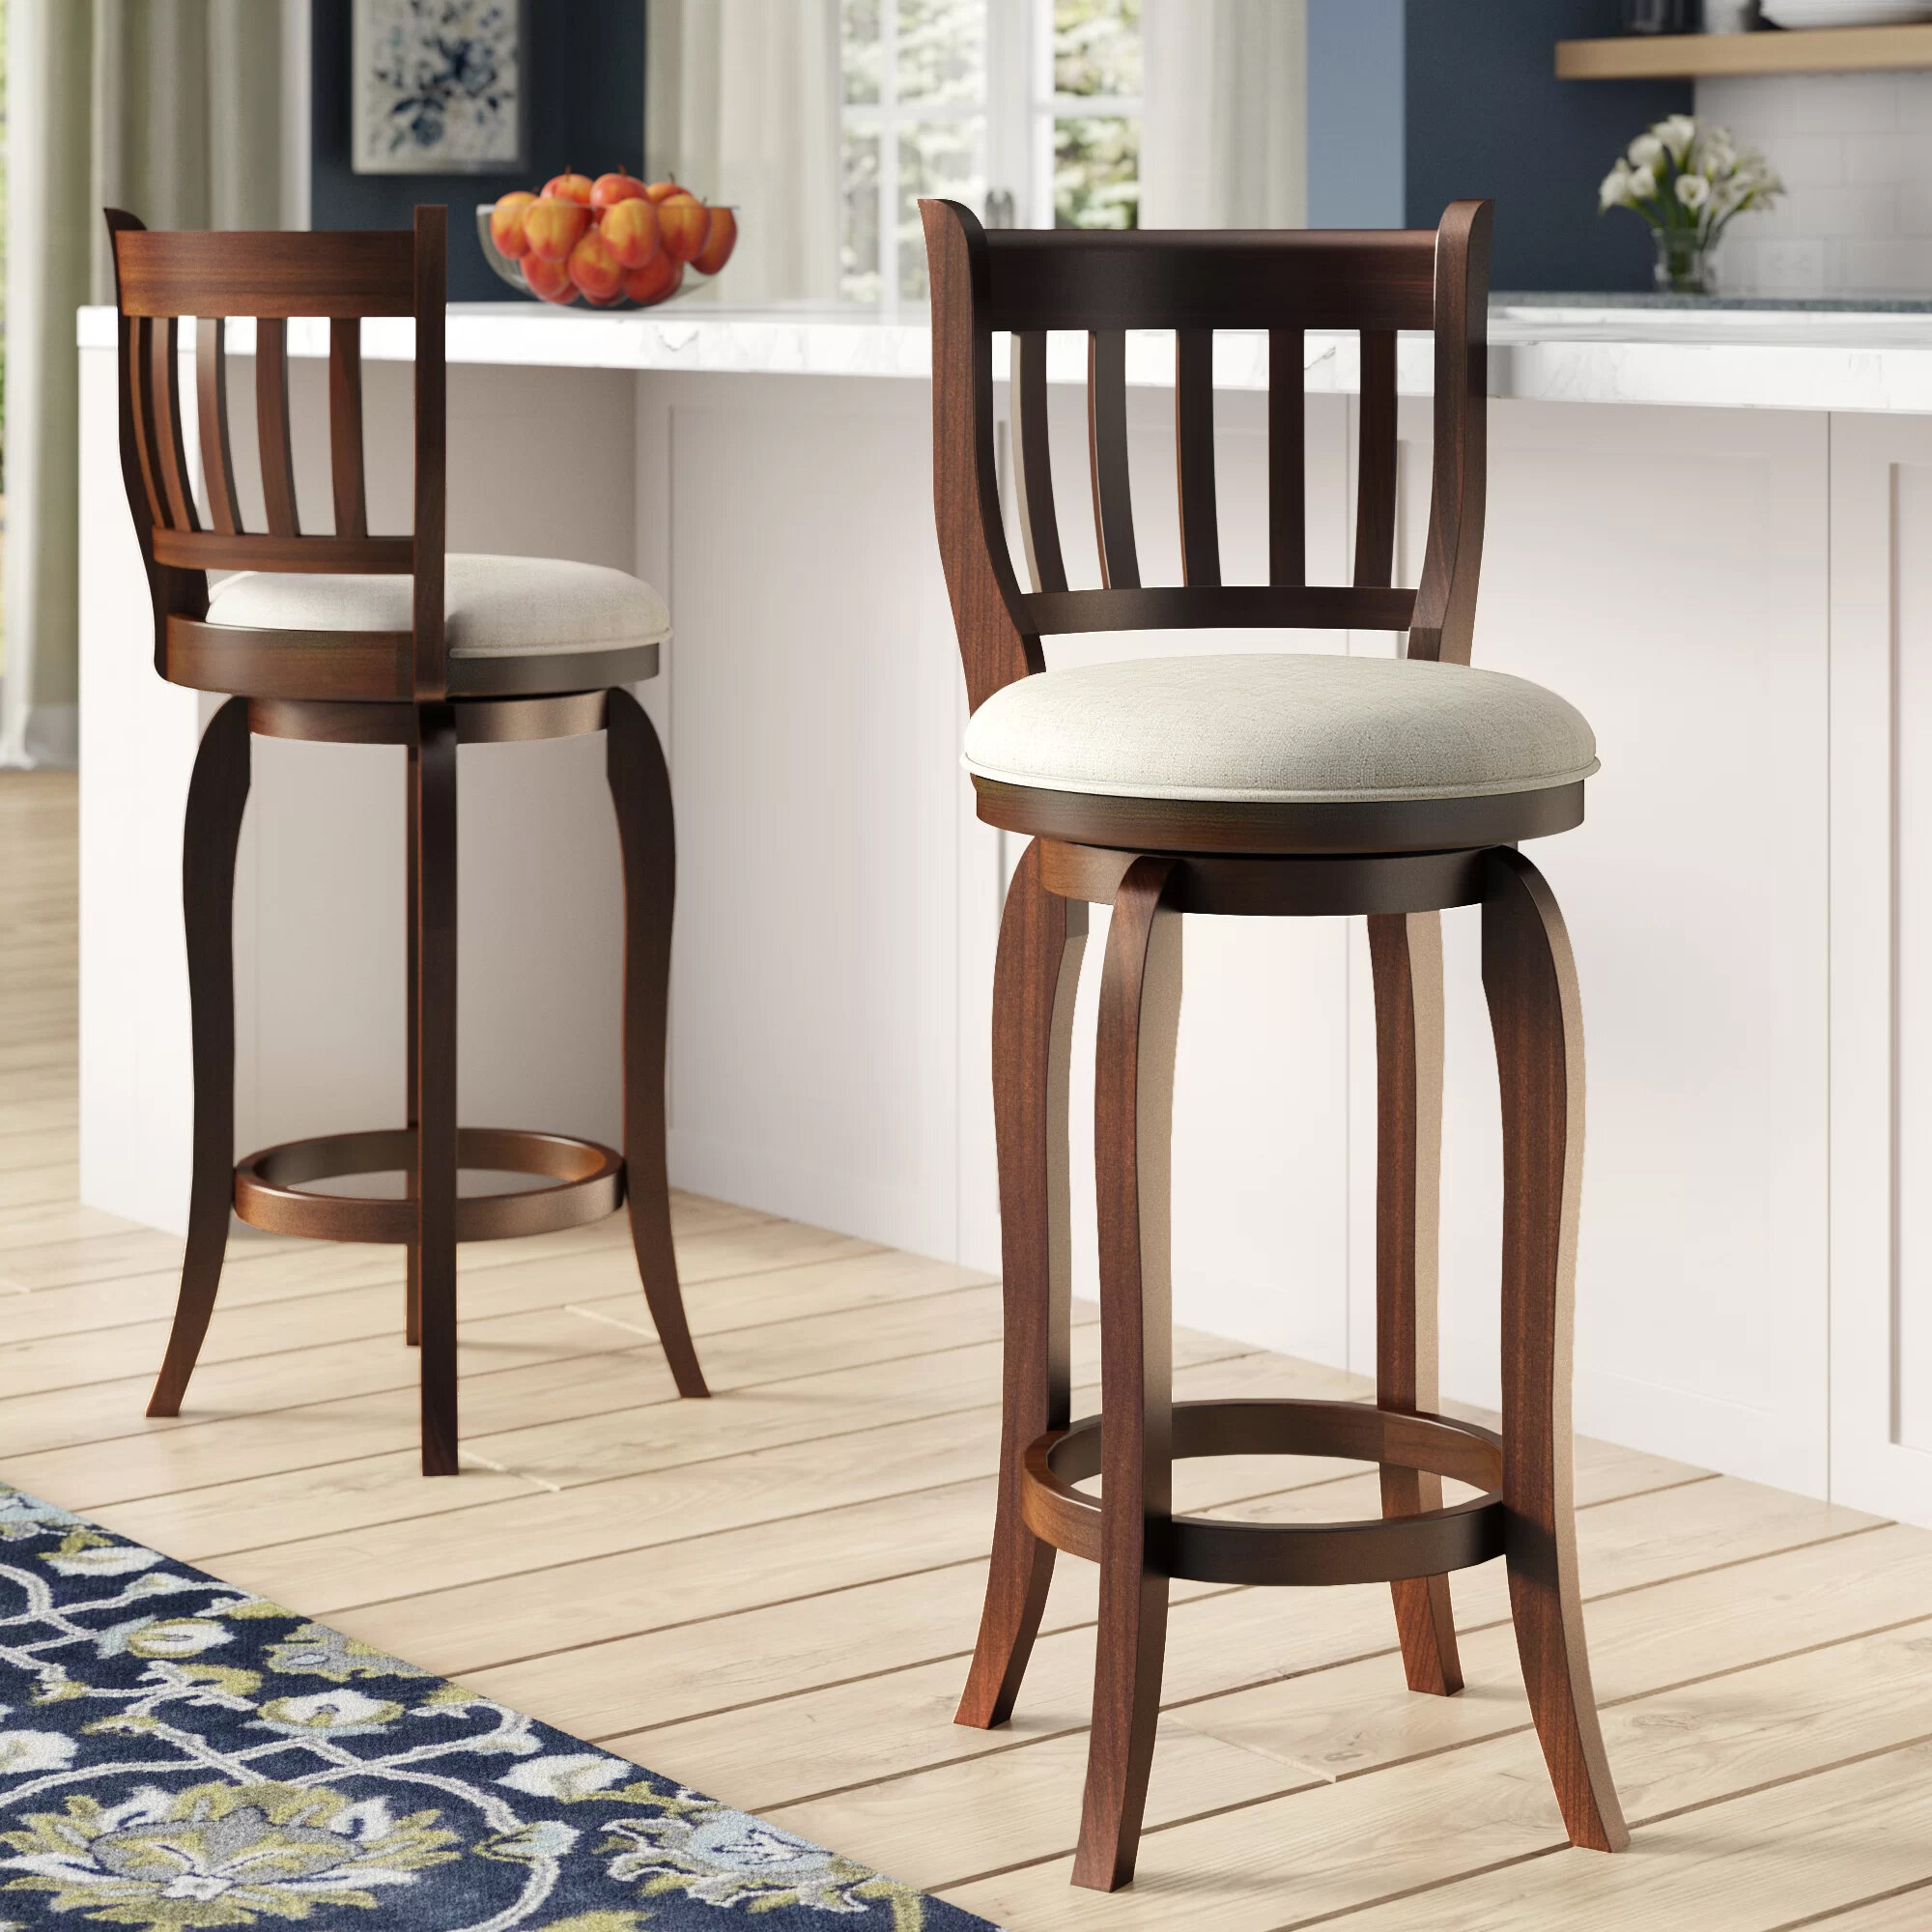 Morgan Bar Counter Swivel Stool